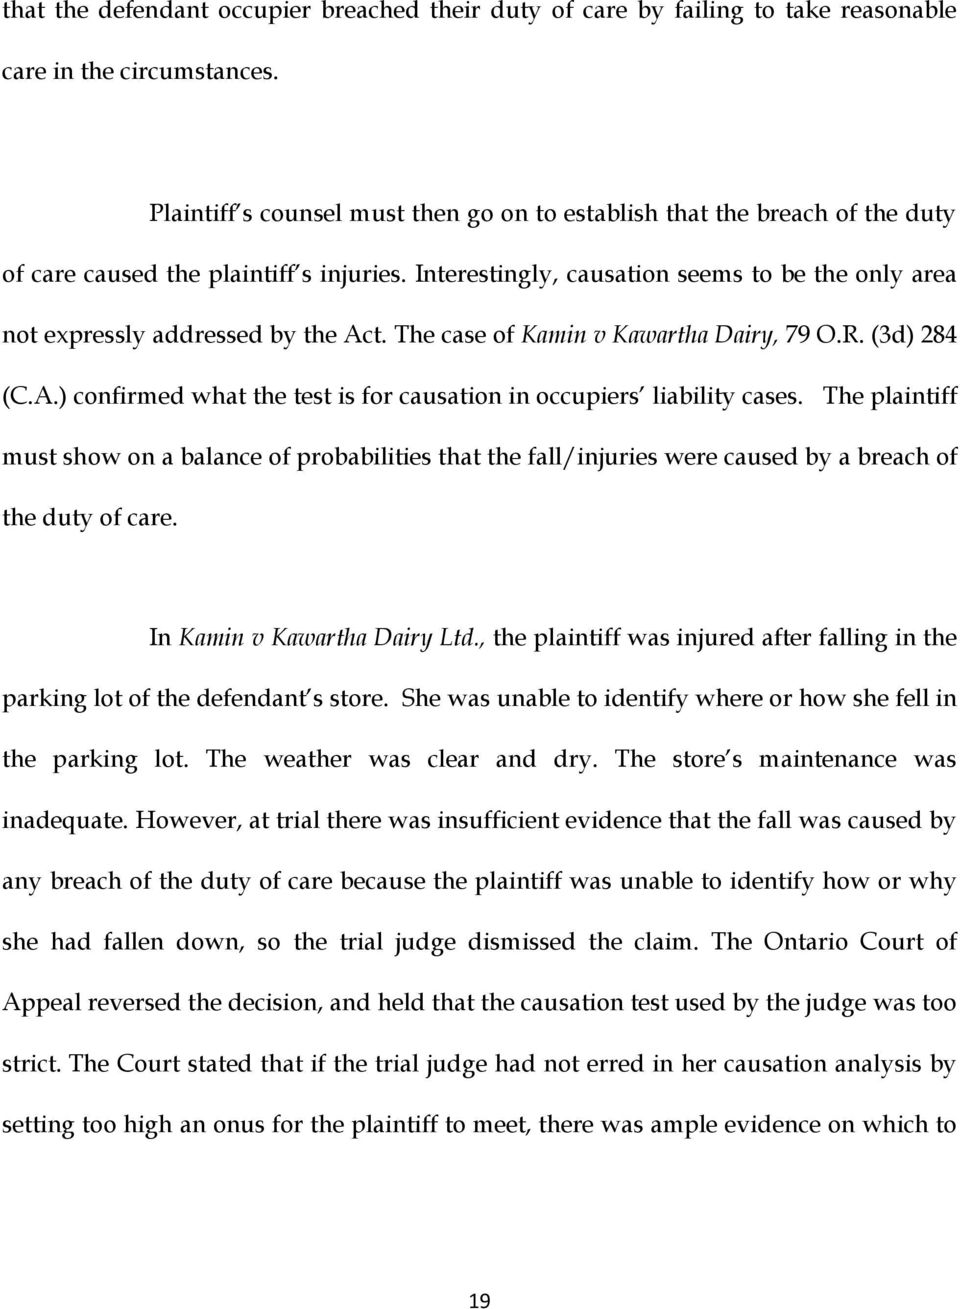 Interestingly, causation seems to be the only area not expressly addressed by the Act. The case of Kamin v Kawartha Dairy, 79 O.R. (3d) 284 (C.A.) confirmed what the test is for causation in occupiers liability cases.